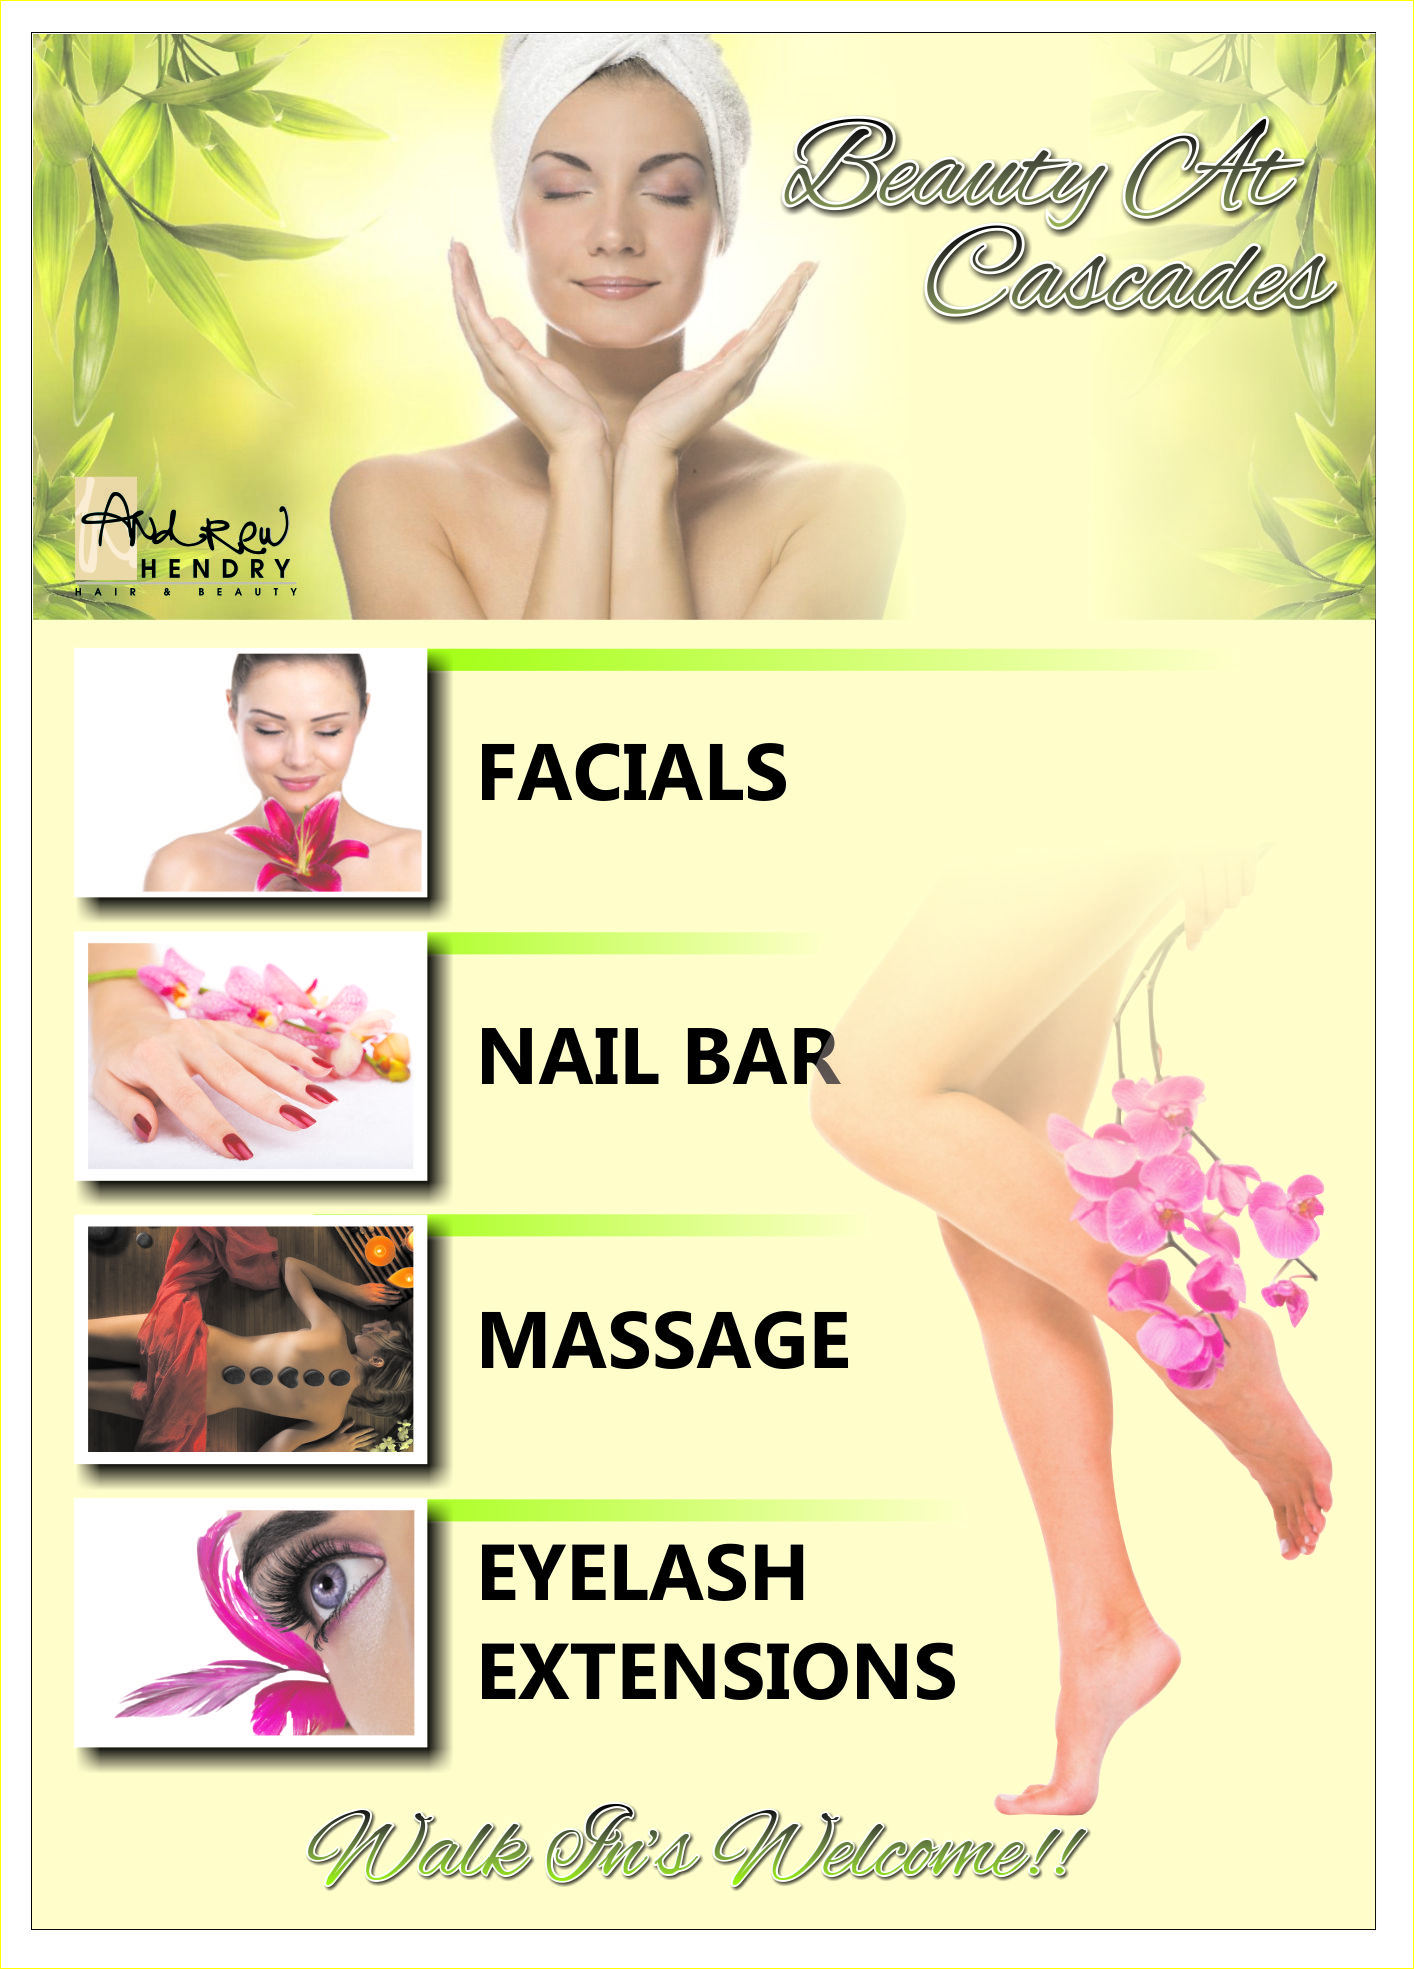 beauty, cascades, posters,  posters, banners, graphics, designs, advertising, advertisement